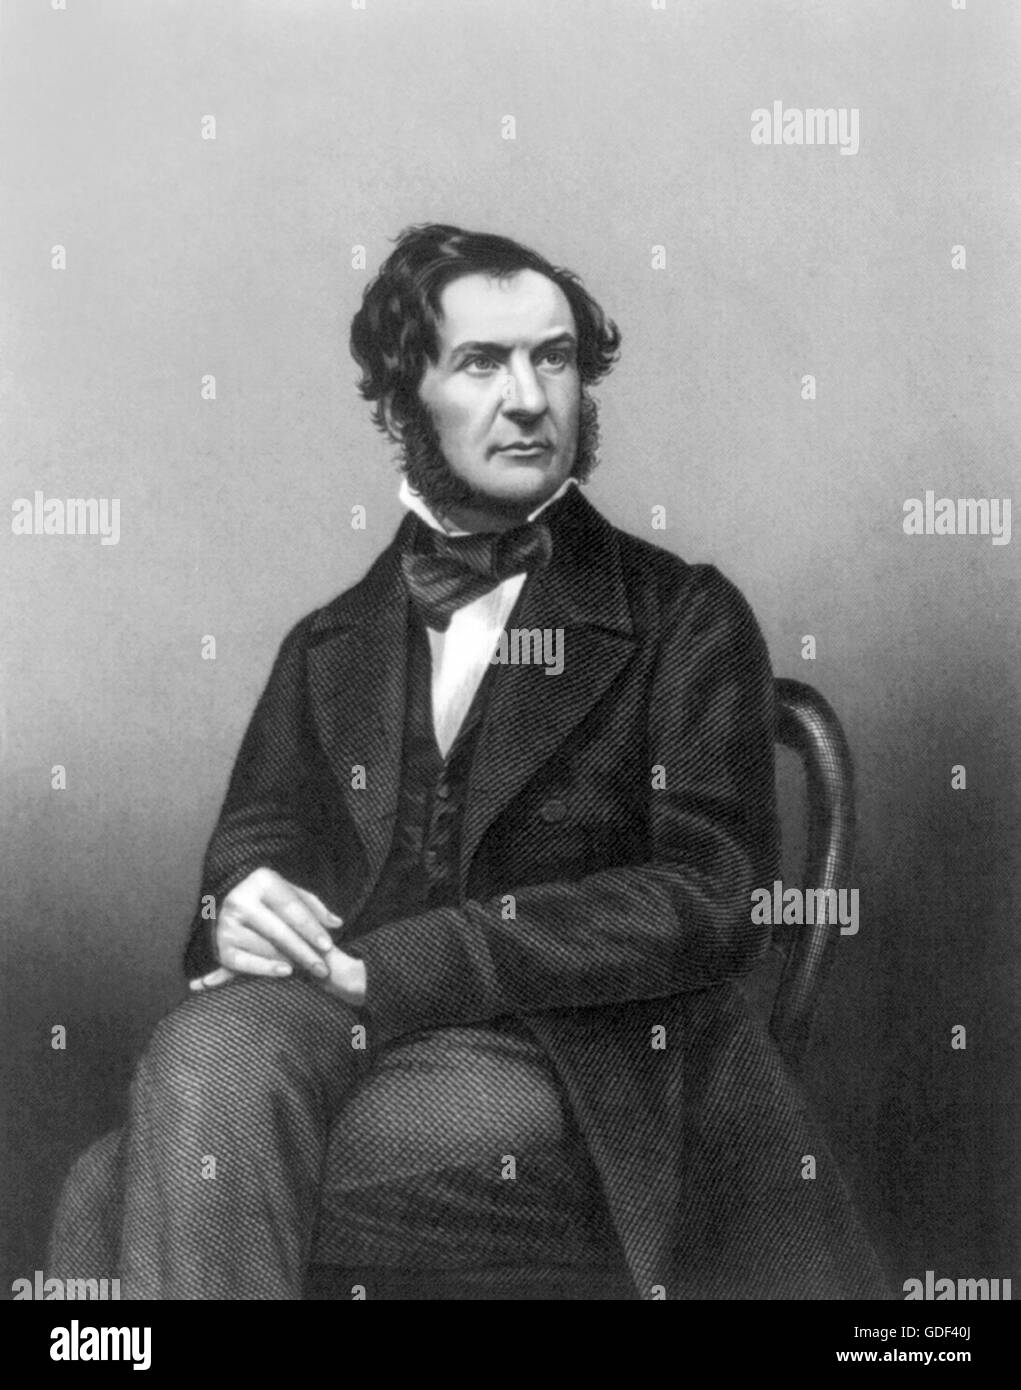 William Gladstone (1809-1898) Undated engraving. - Stock Image